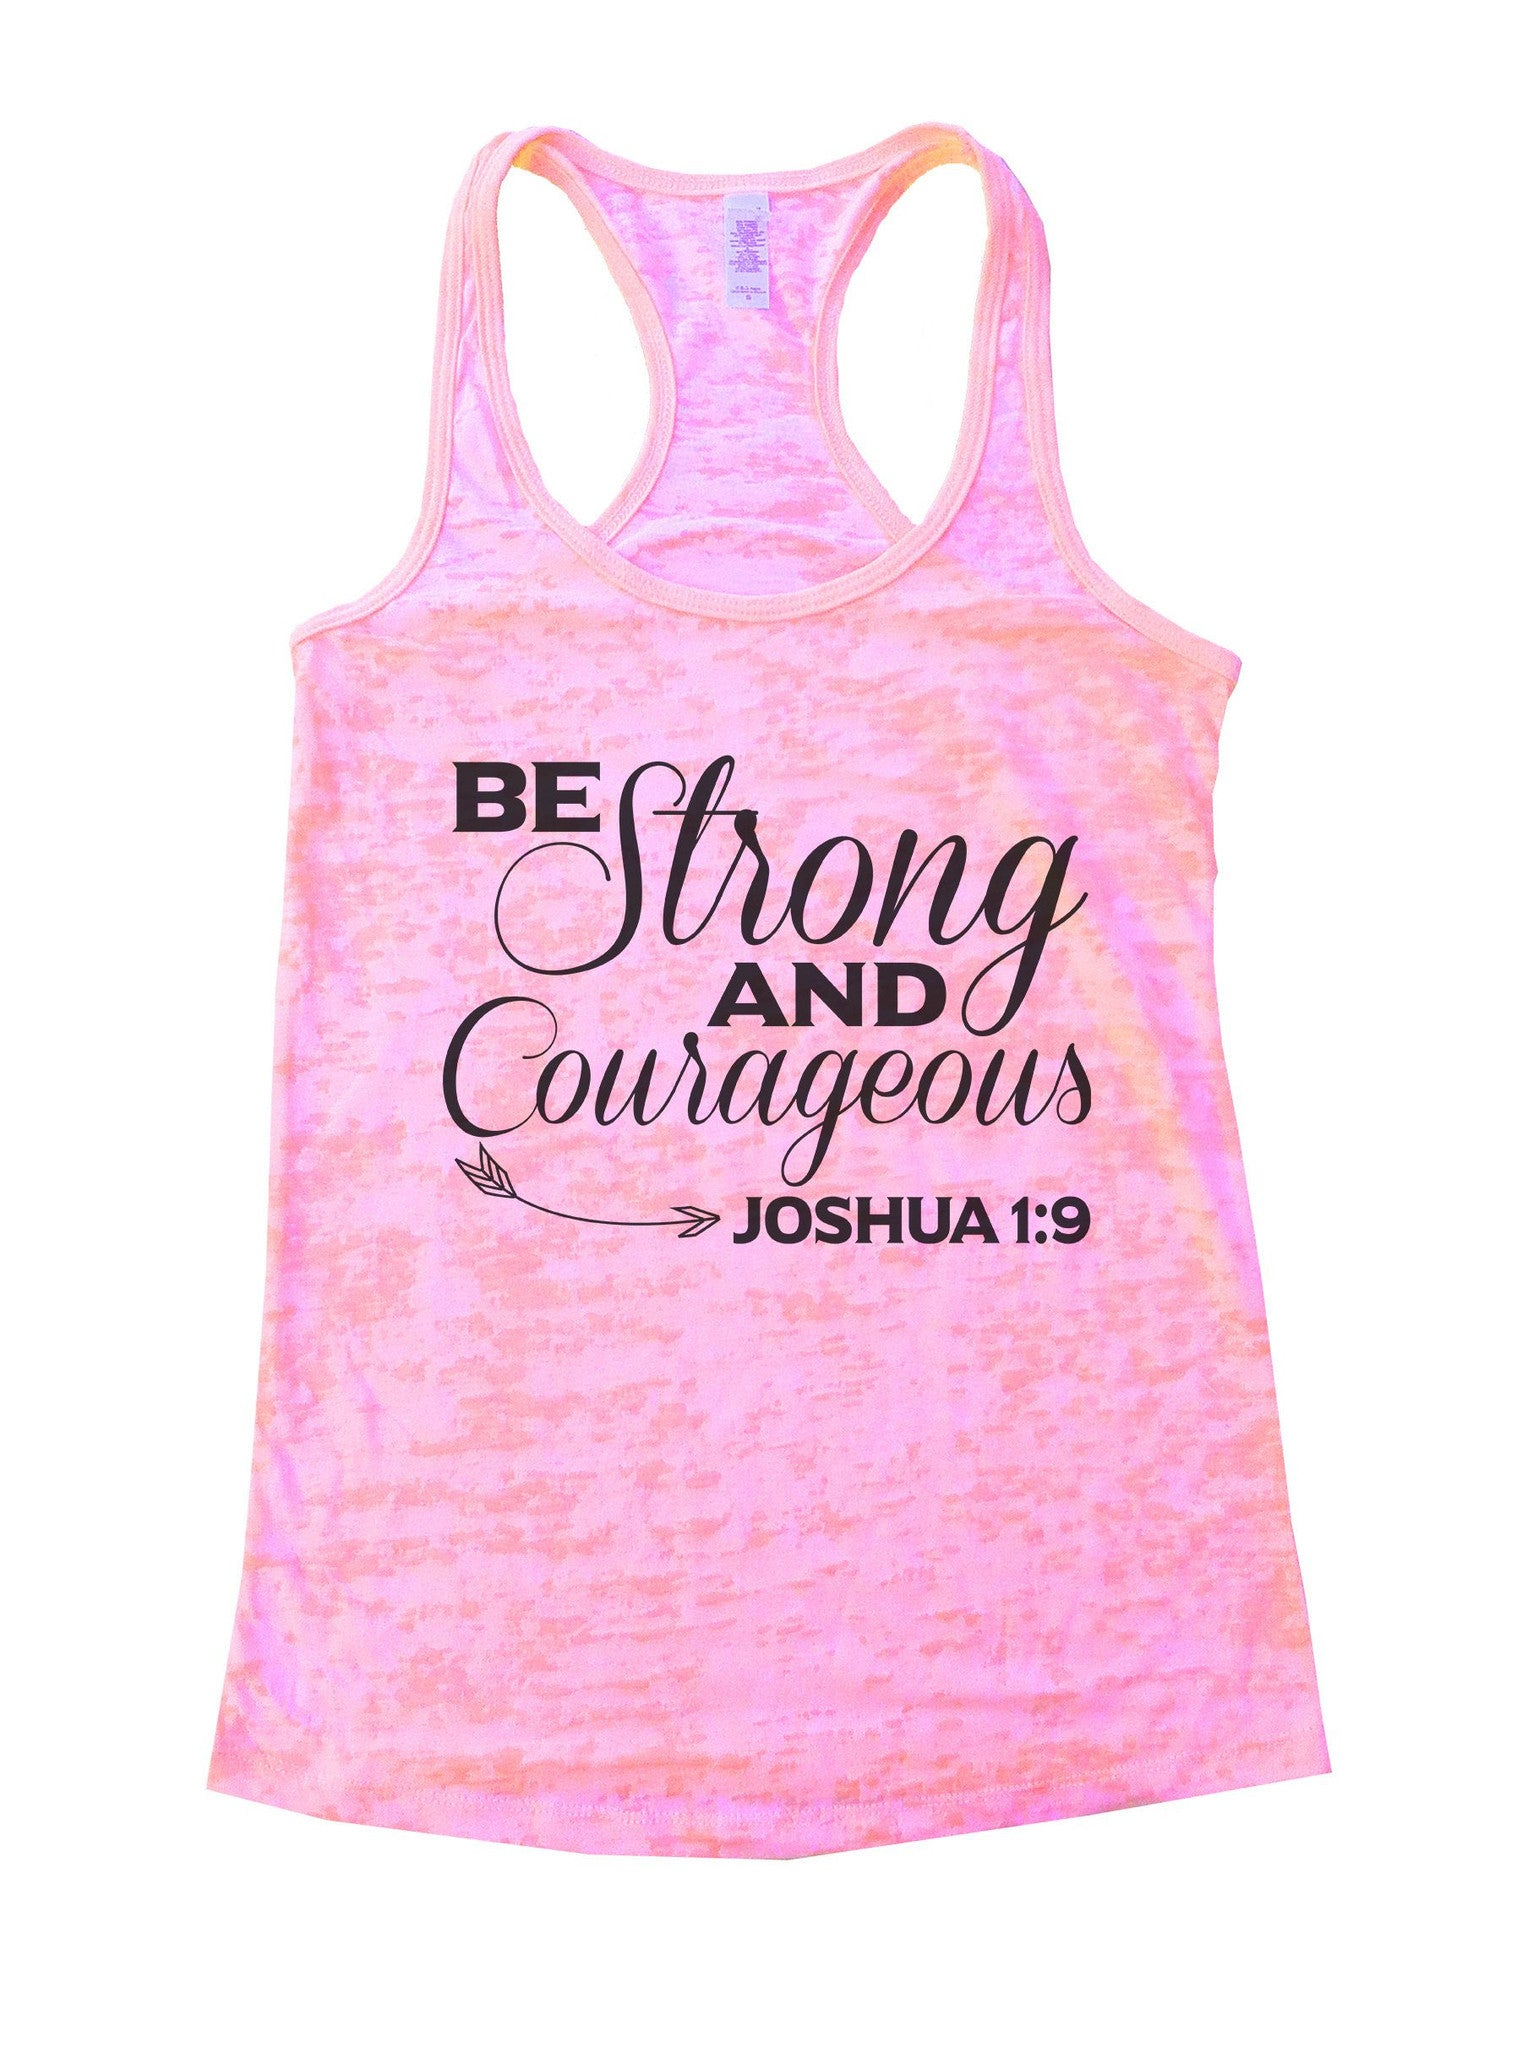 Be Strong And Courageous Joshua 1:9 Burnout Tank Top By BurnoutTankTops.com - 948 - Funny Shirts Tank Tops Burnouts and Triblends  - 1